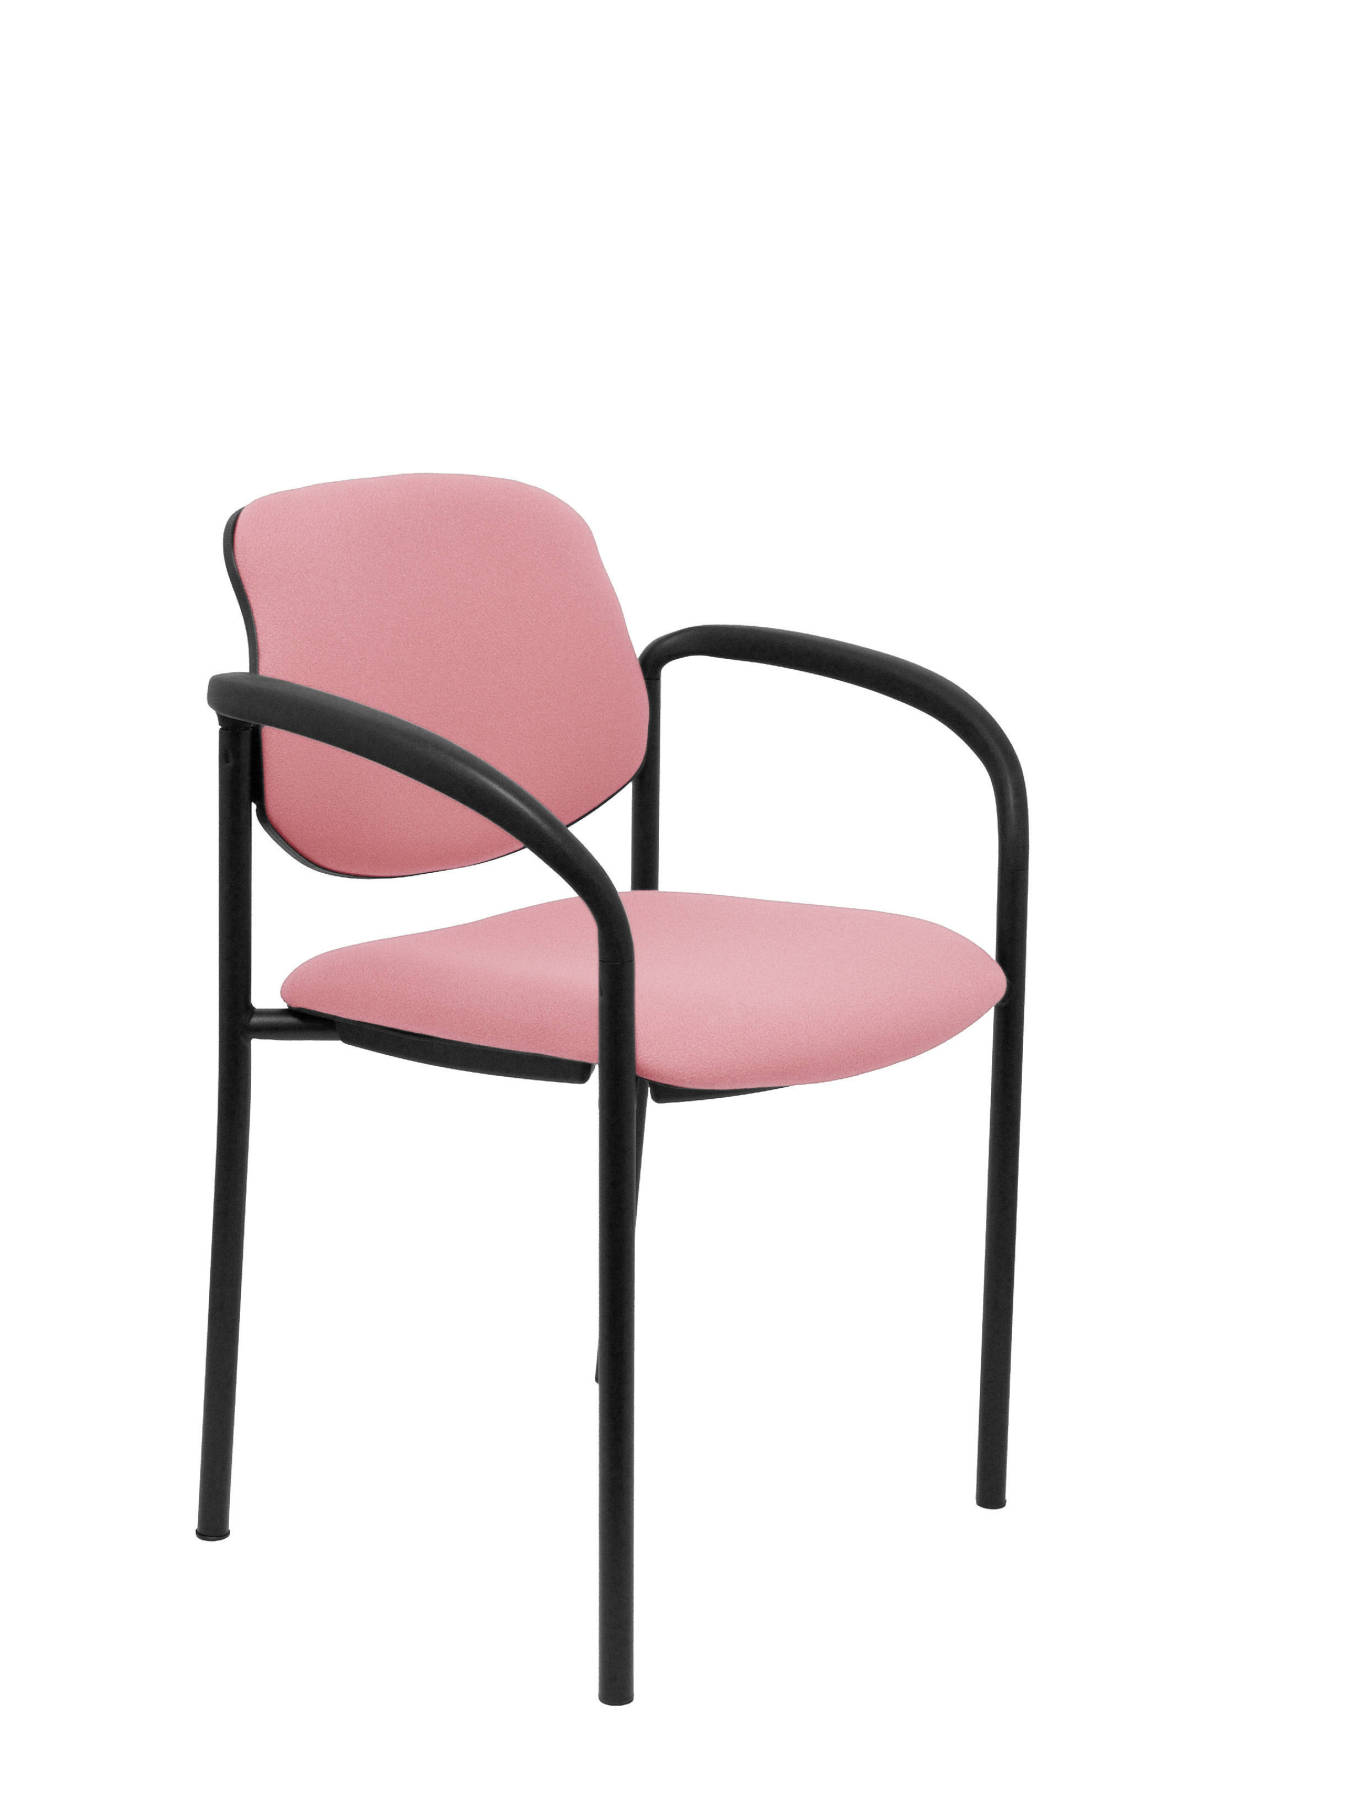 Visitor Chair 4's Topsy, With Arms And Estructrua Negro-up Seat And Backstop Upholstered In BALI Tissue Pink Colour PIQU